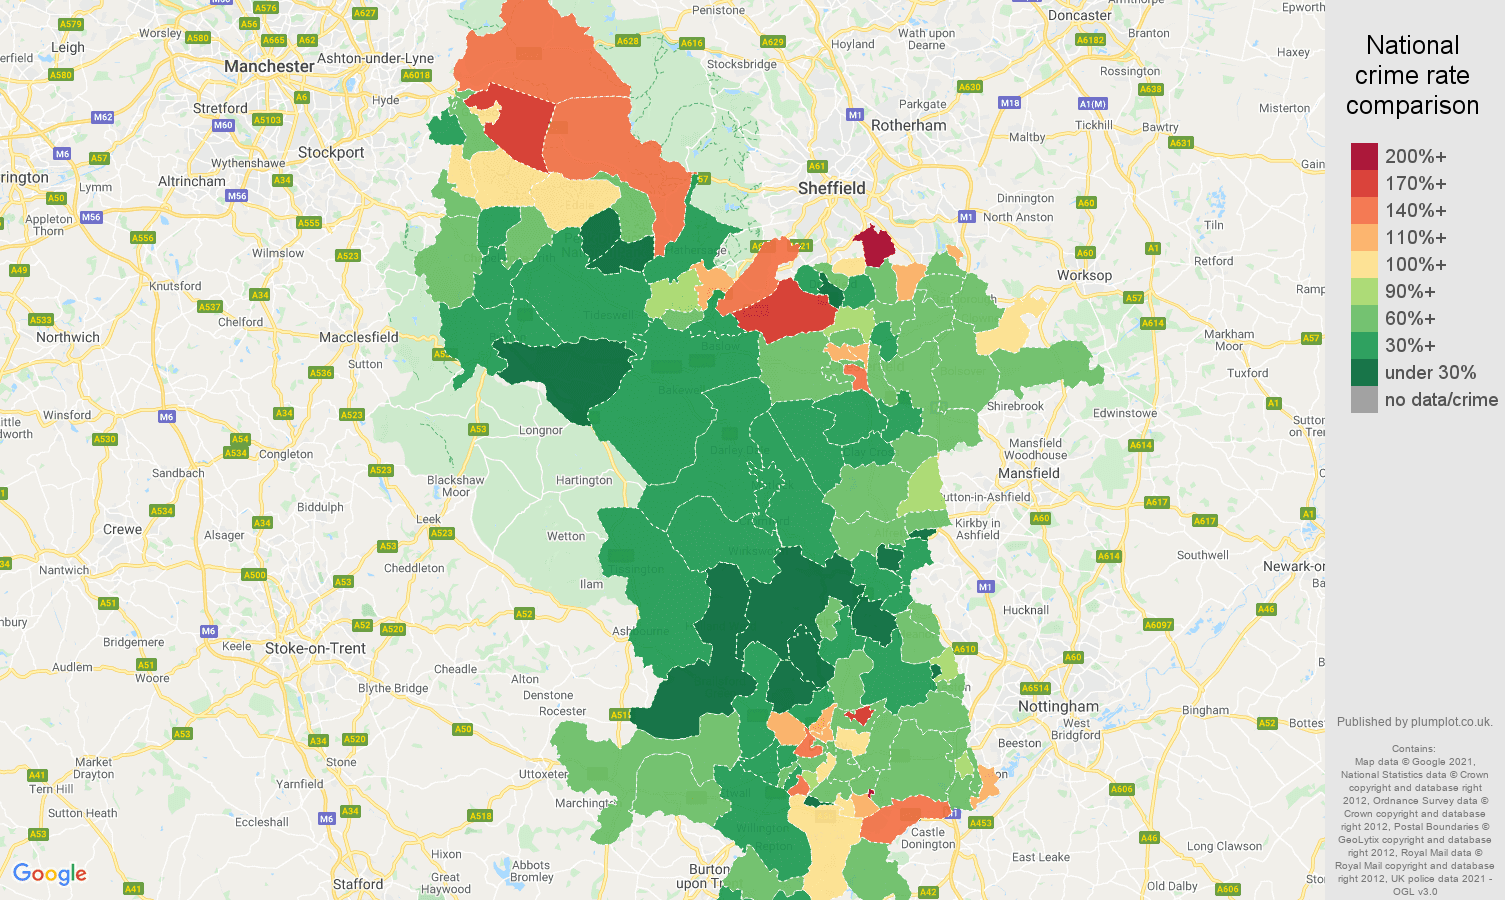 Derbyshire vehicle crime rate comparison map